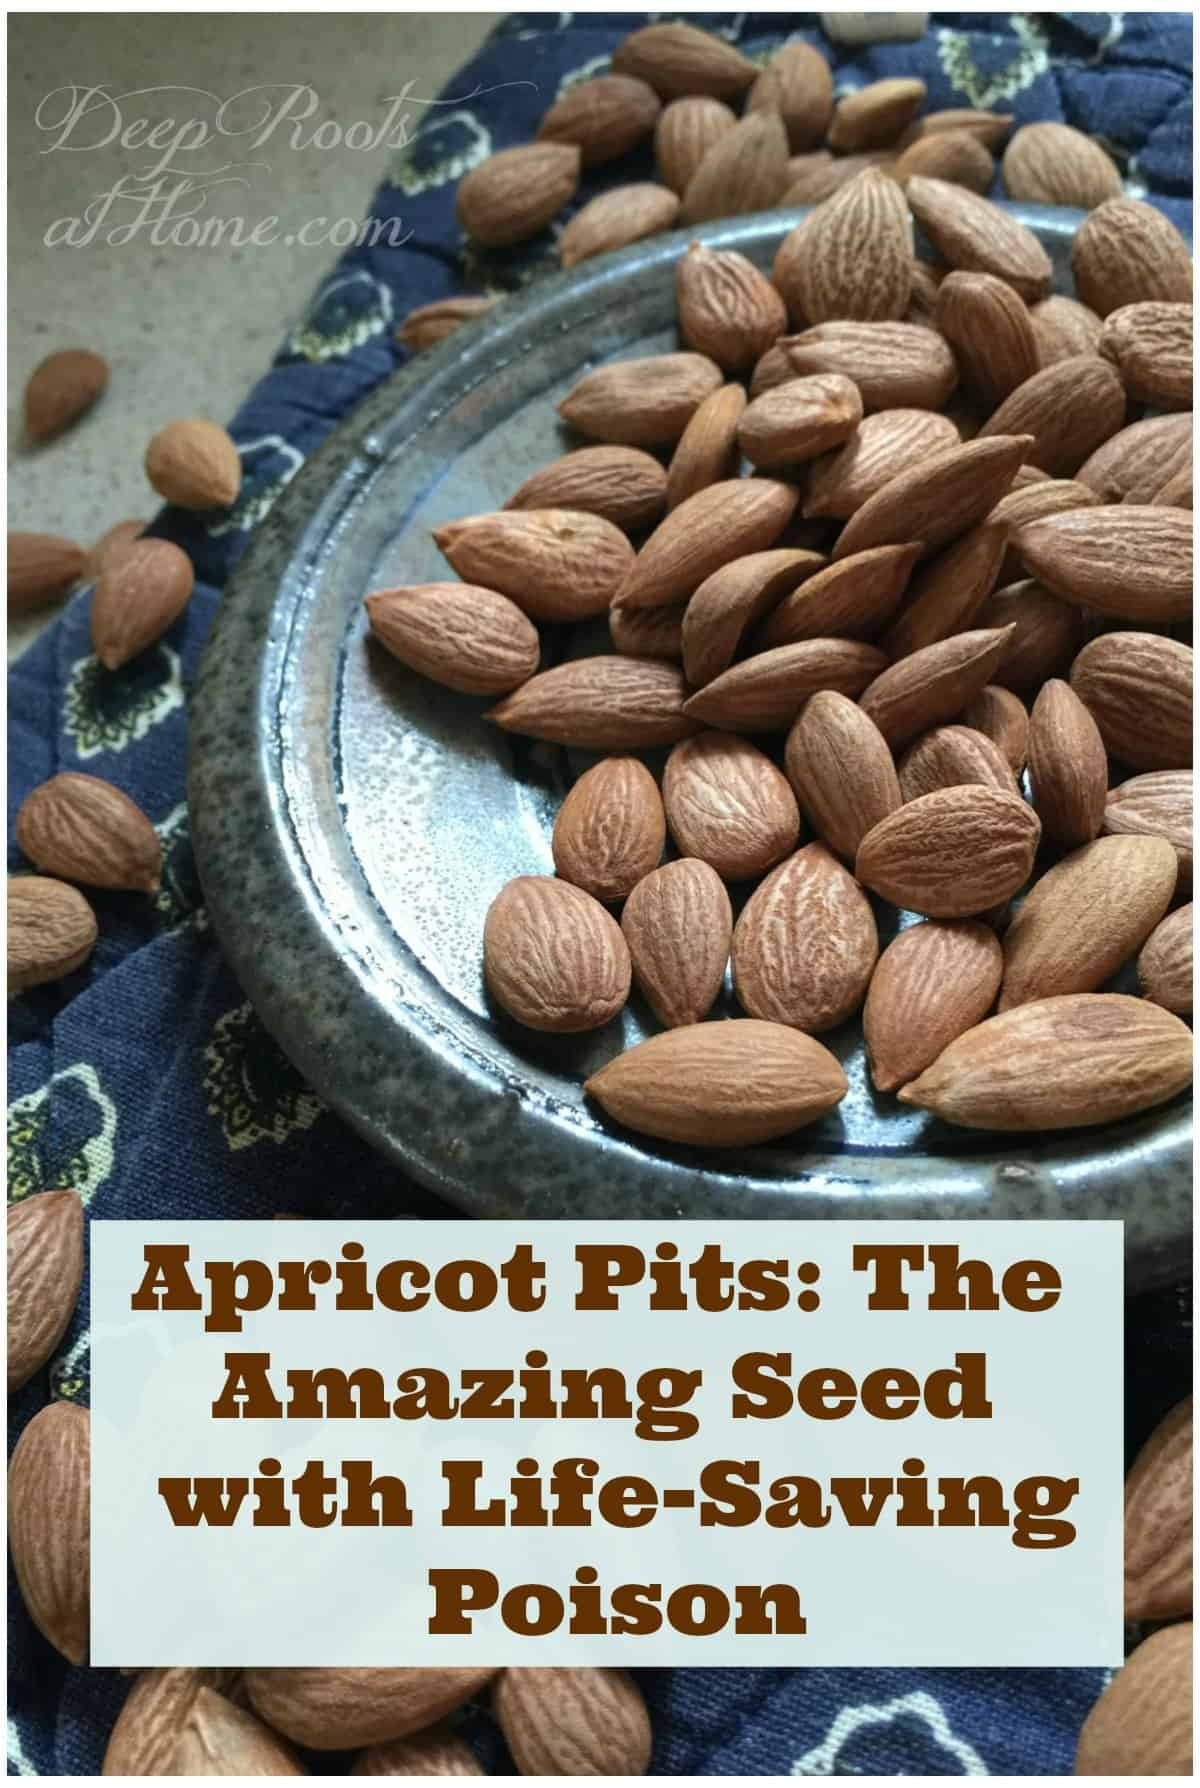 Apricot Pits The Amazing Seed with Life-Saving Poison. seeds or pits